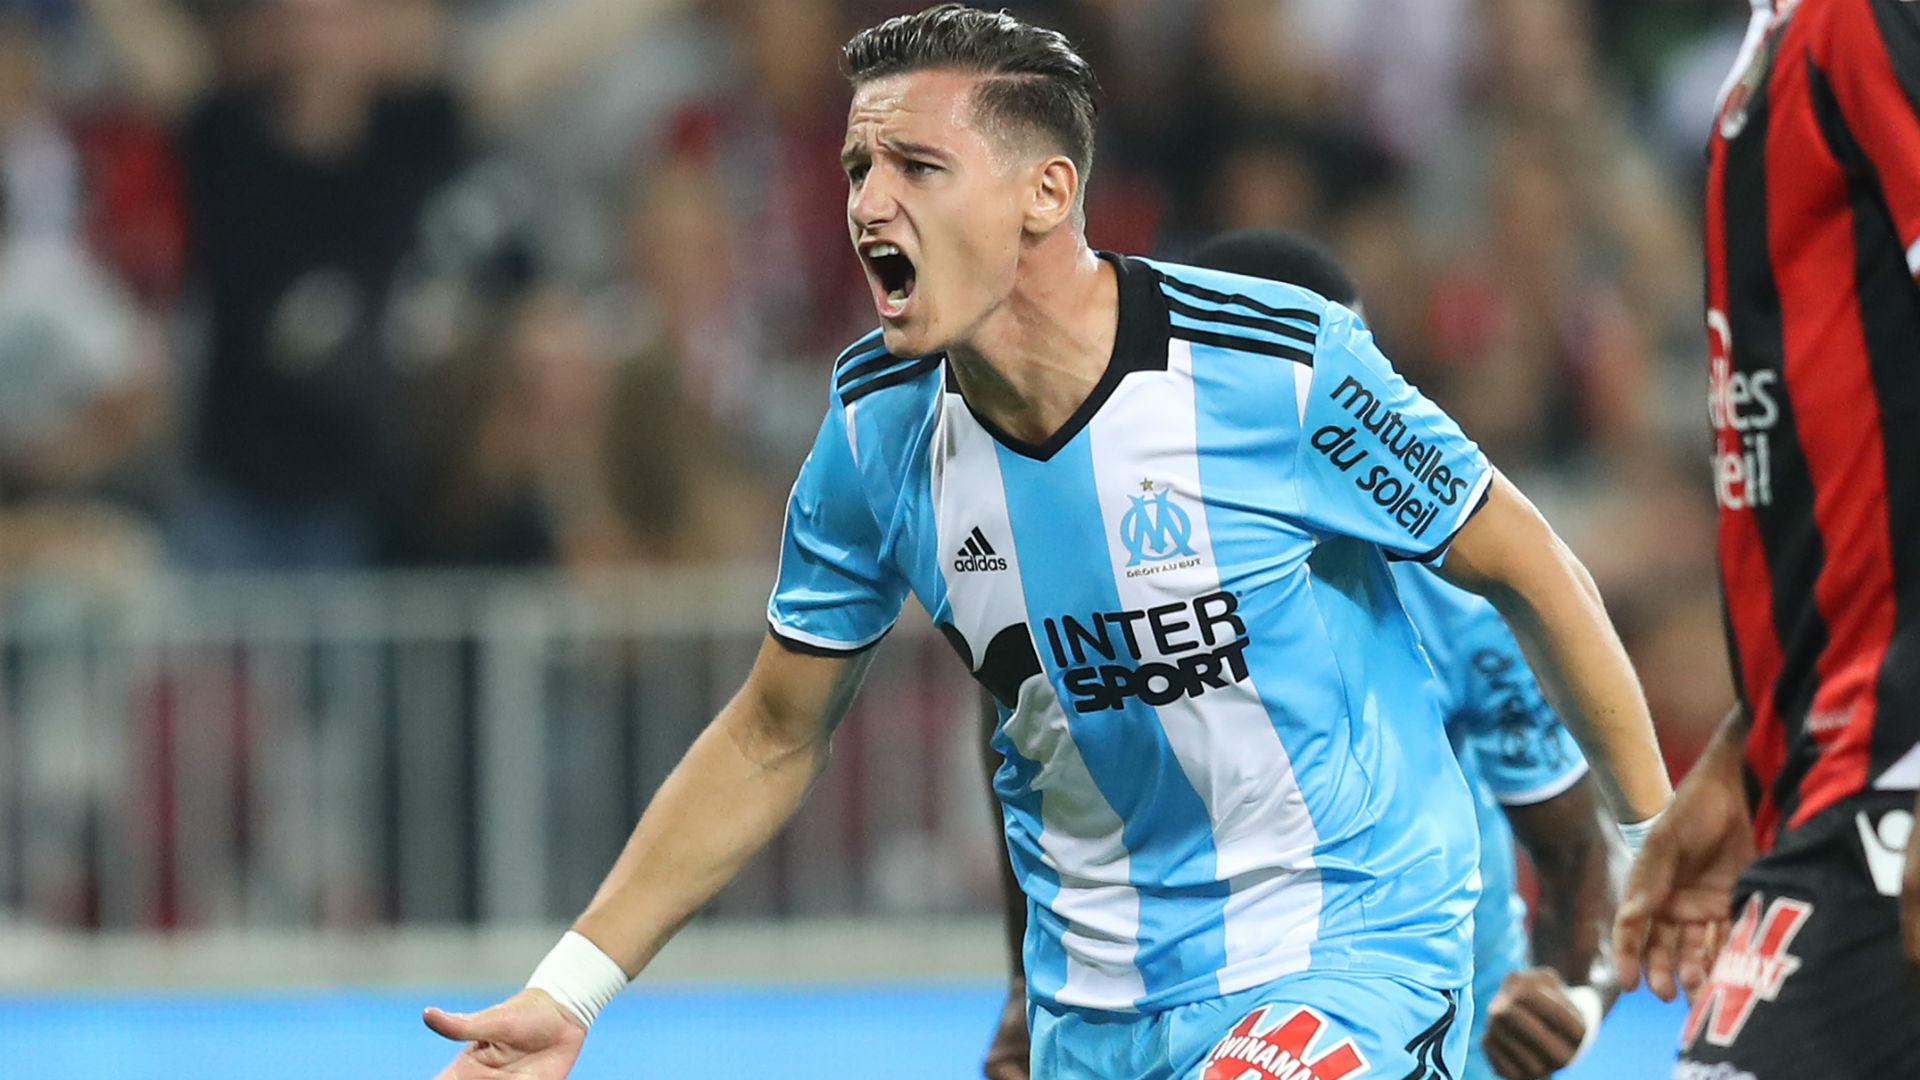 thauvin pr u00eat  u00e0 faire toute sa carri u00e8re  u00e0 l u0026 39 om